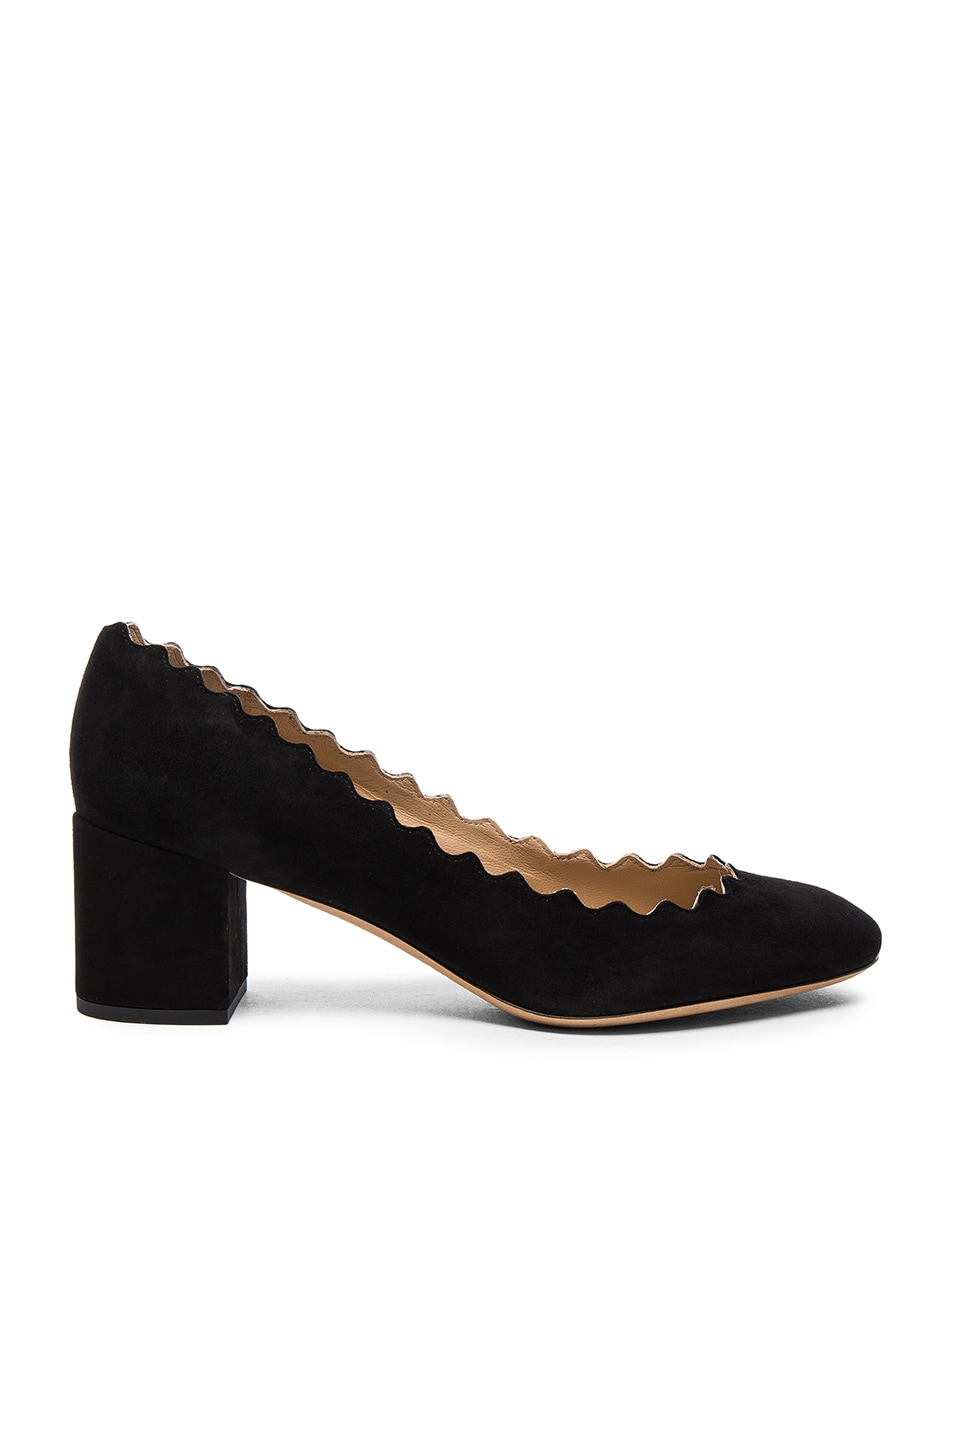 1a6b7b4e29e Image 1 of Chloe Lauren Suede Pumps in Black